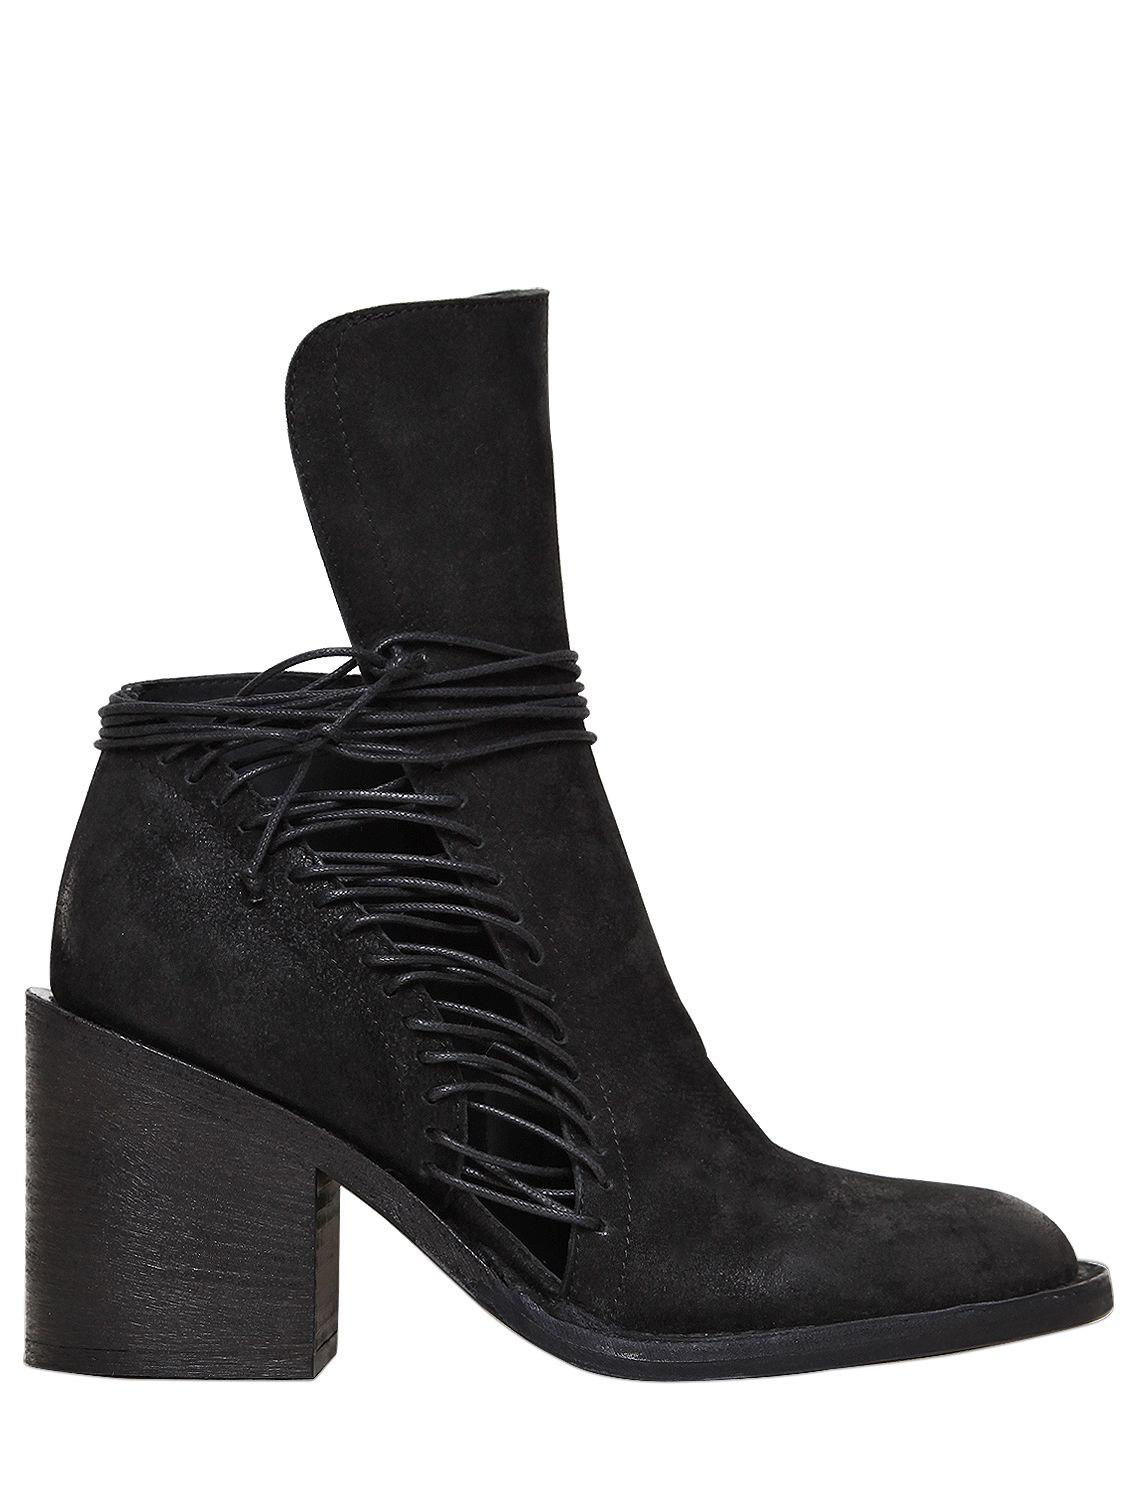 Pre-owned - Leather ankle boots Ann Demeulemeester H06sgu